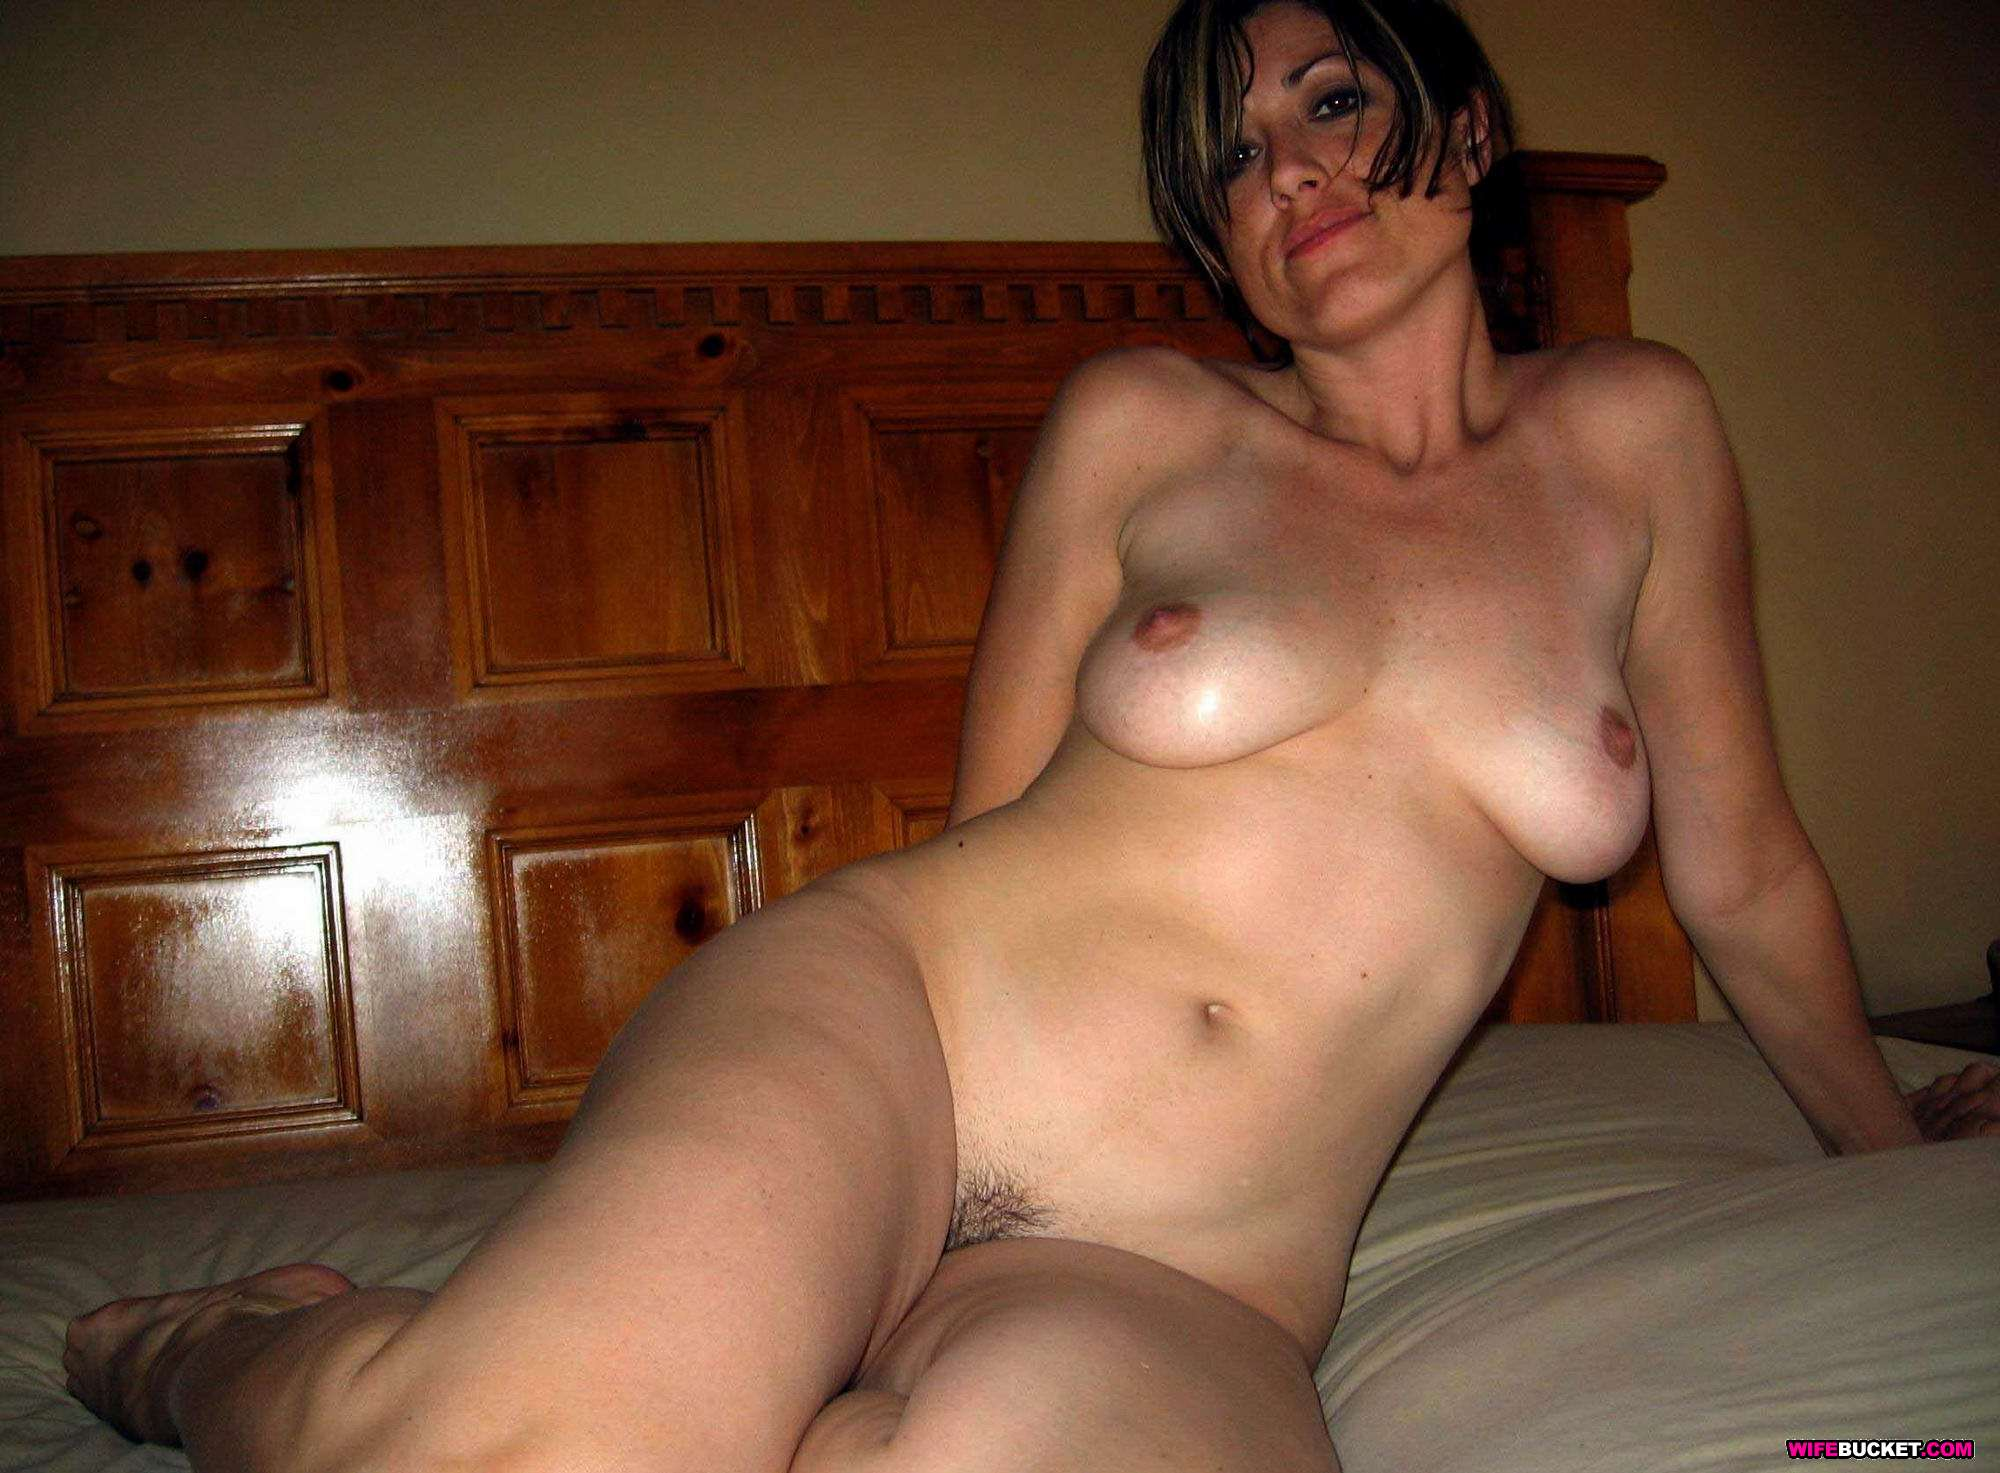 photos of nude ohio wife